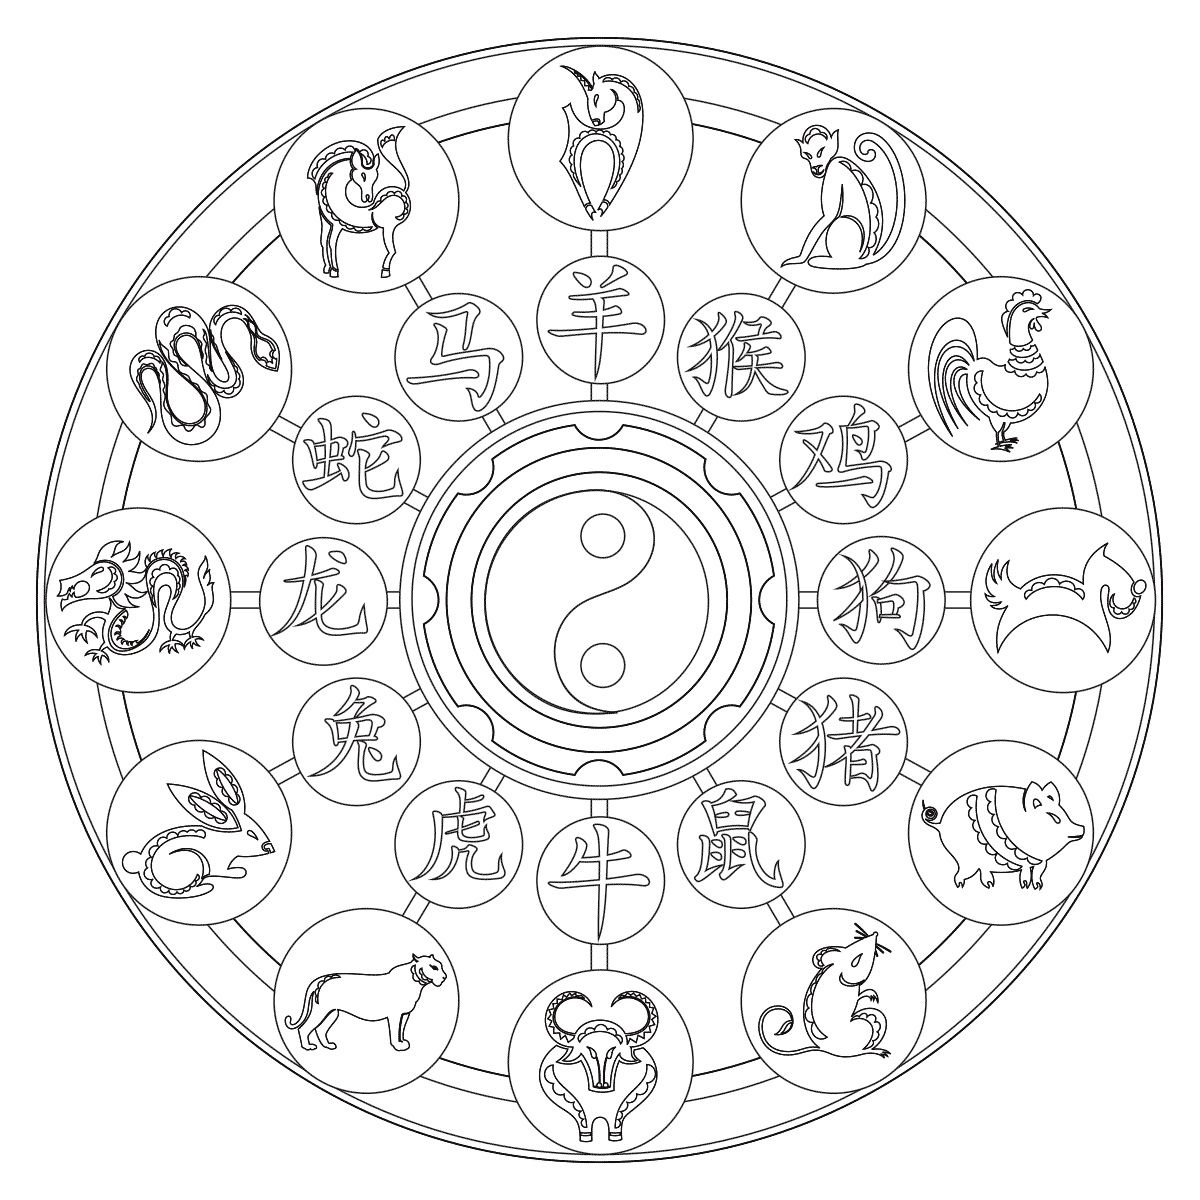 Mandalas For Kids | Mandala | Coloring Pages, Mandala Coloring Pages - Free Printable Chinese Zodiac Wheel